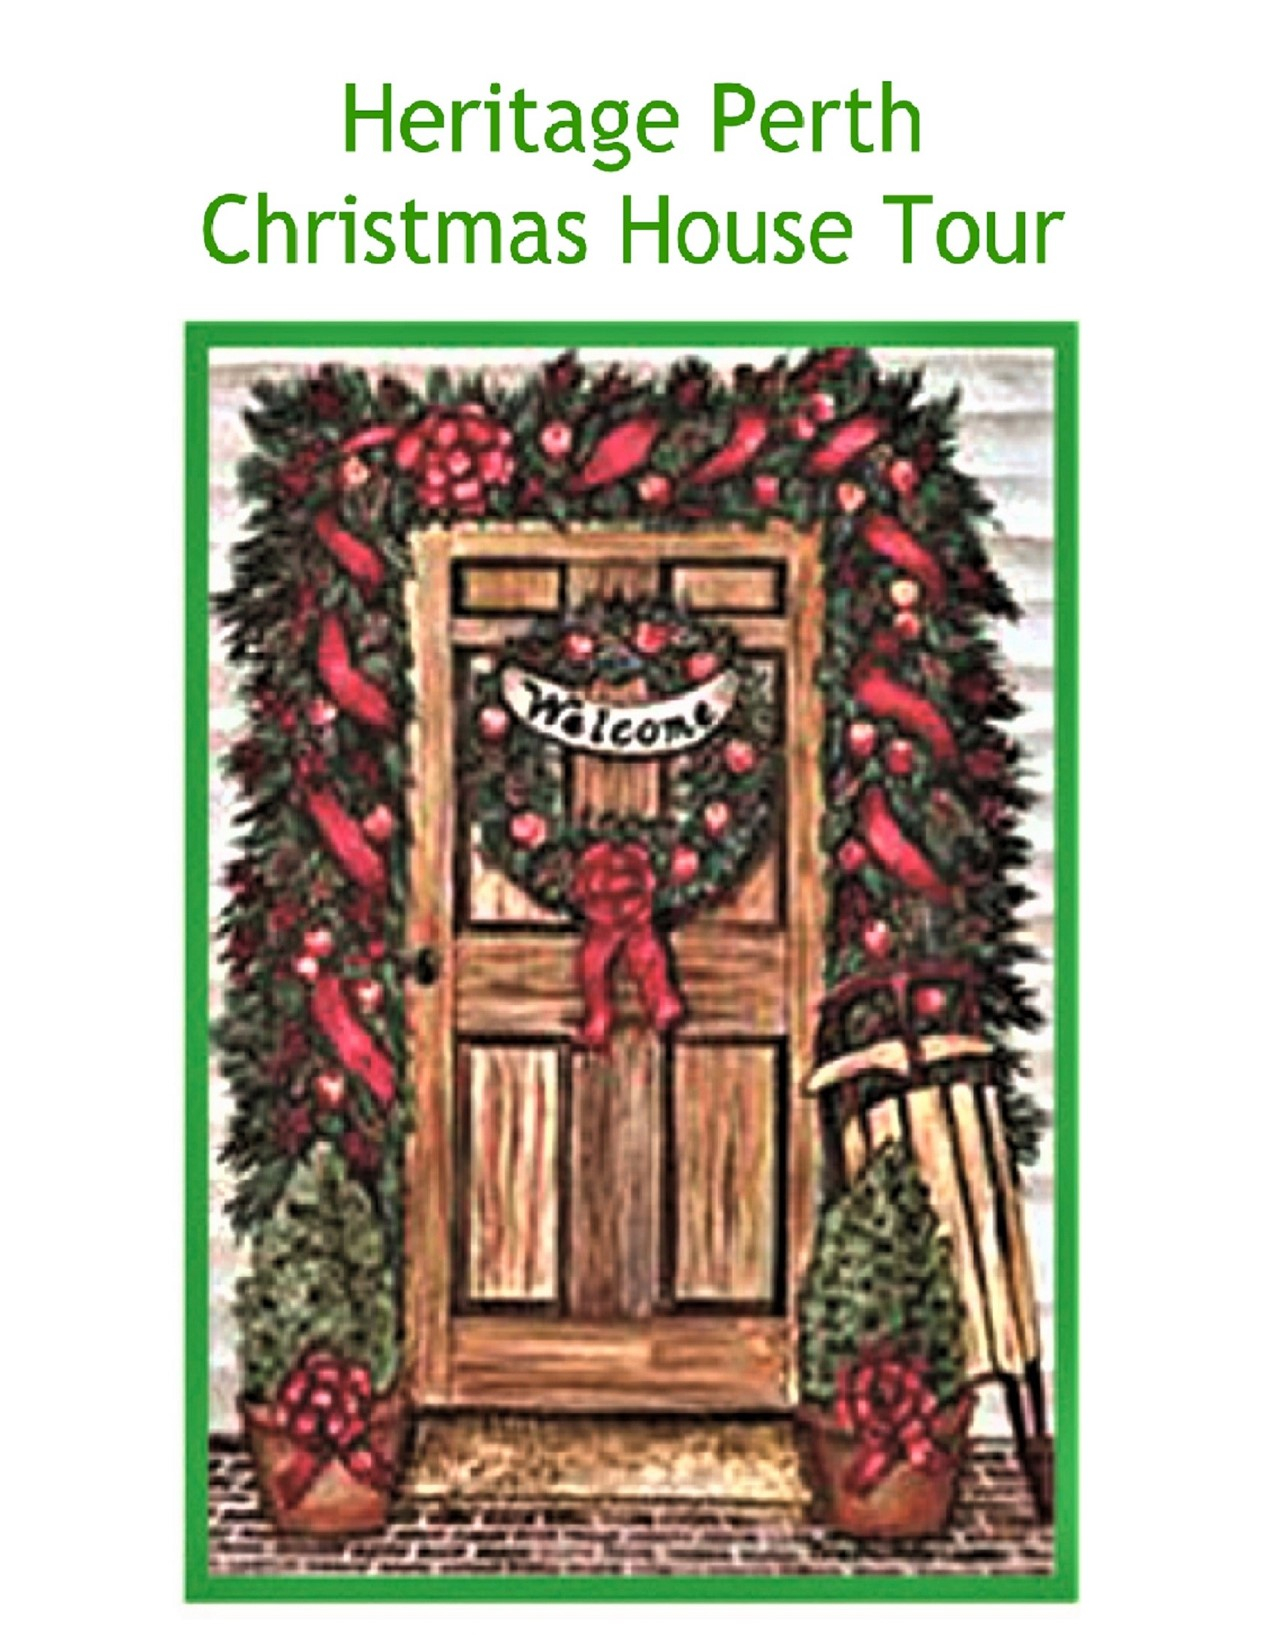 Heritage Perth Christmas House Tour - Lanark County Tourism Regarding College Of Lake County Calendar 2021